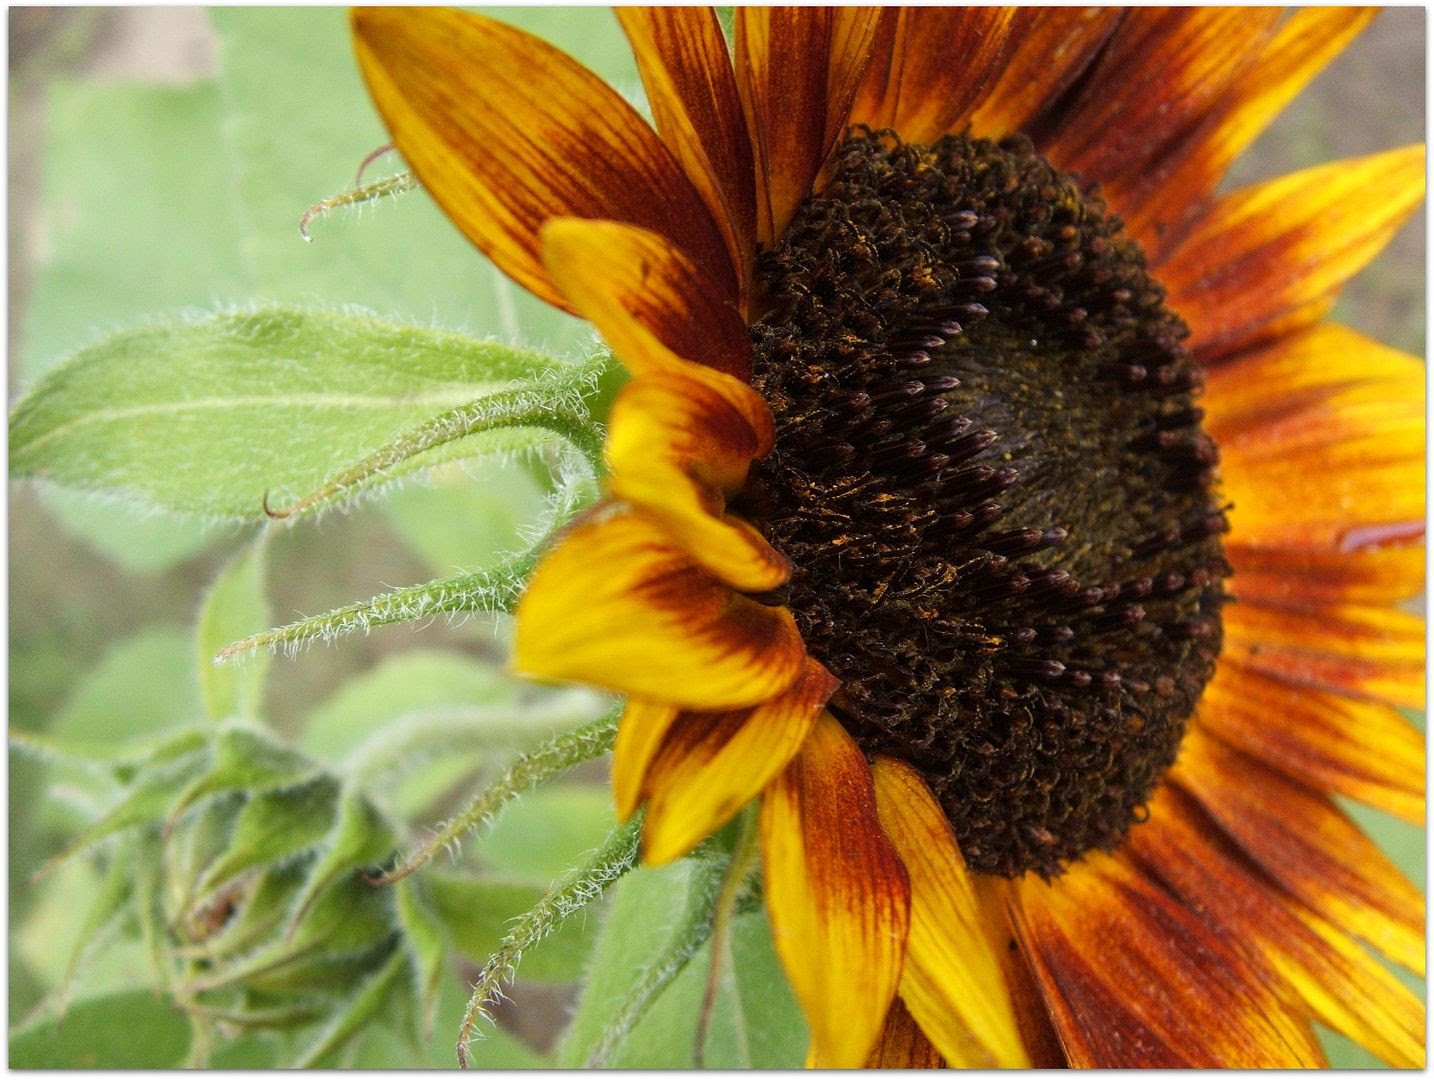 by Angie Ouellette-Tower for http://www.godsgrowinggarden.com/ photo DSCF8989_zpsq2vxopga.jpg